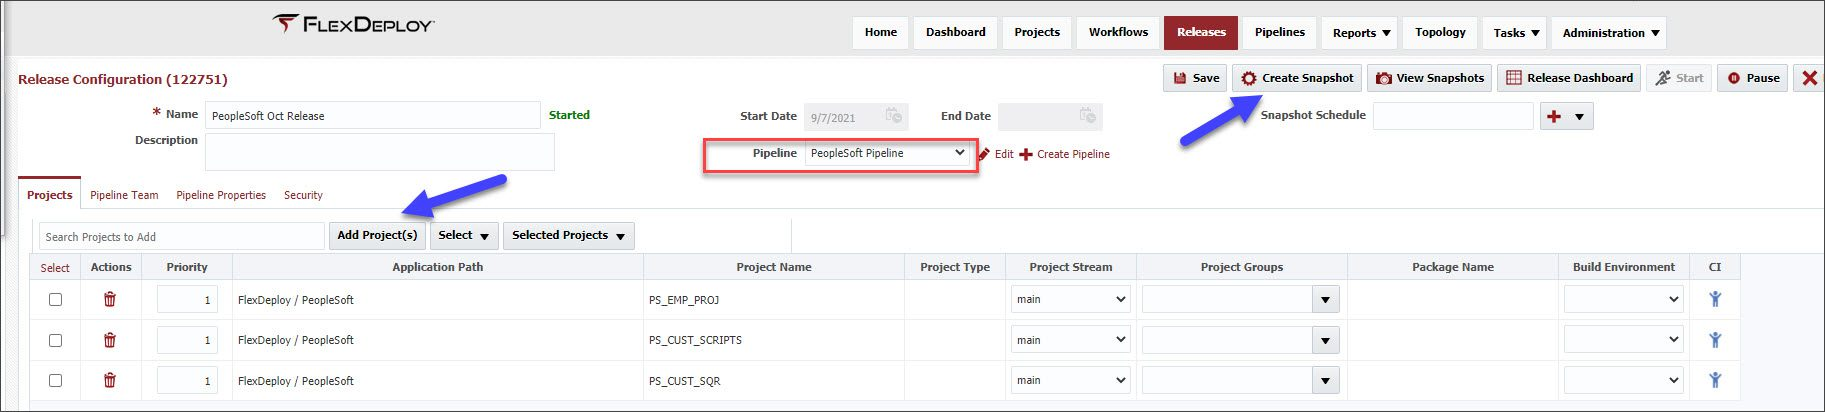 Adding projects to the PoepleSoft pipeline